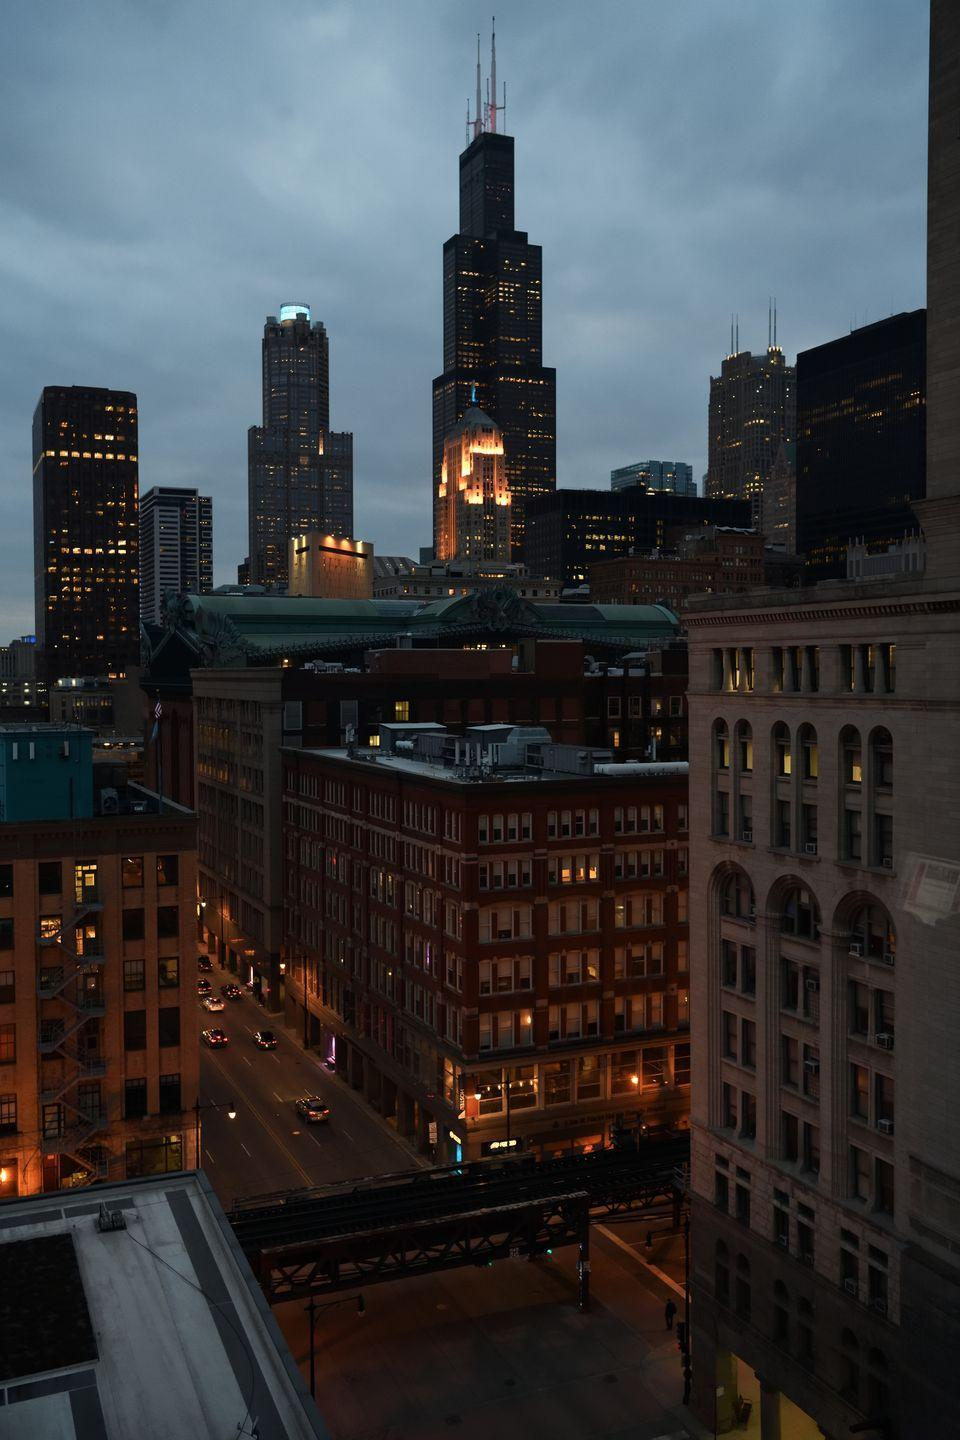 """<p>Explore the Windy City's """"Vice District"""" on this two-hour tour, which takes visitors to Prohibition-era speakeasies, former criminal hangouts, and haunted places like Congress Hotel, Palmer House, and Death Alley.</p><p><a class=""""link rapid-noclick-resp"""" href=""""https://go.redirectingat.com?id=74968X1596630&url=https%3A%2F%2Fwww.tripadvisor.com%2FAttractionProductReview-g35805-d13387413-Gangsters_and_Ghosts_Tour_in_Chicago-Chicago_Illinois.html&sref=https%3A%2F%2Fwww.redbookmag.com%2Flife%2Fg37623207%2Fghost-tours-near-me%2F"""" rel=""""nofollow noopener"""" target=""""_blank"""" data-ylk=""""slk:LEARN MORE"""">LEARN MORE</a></p>"""